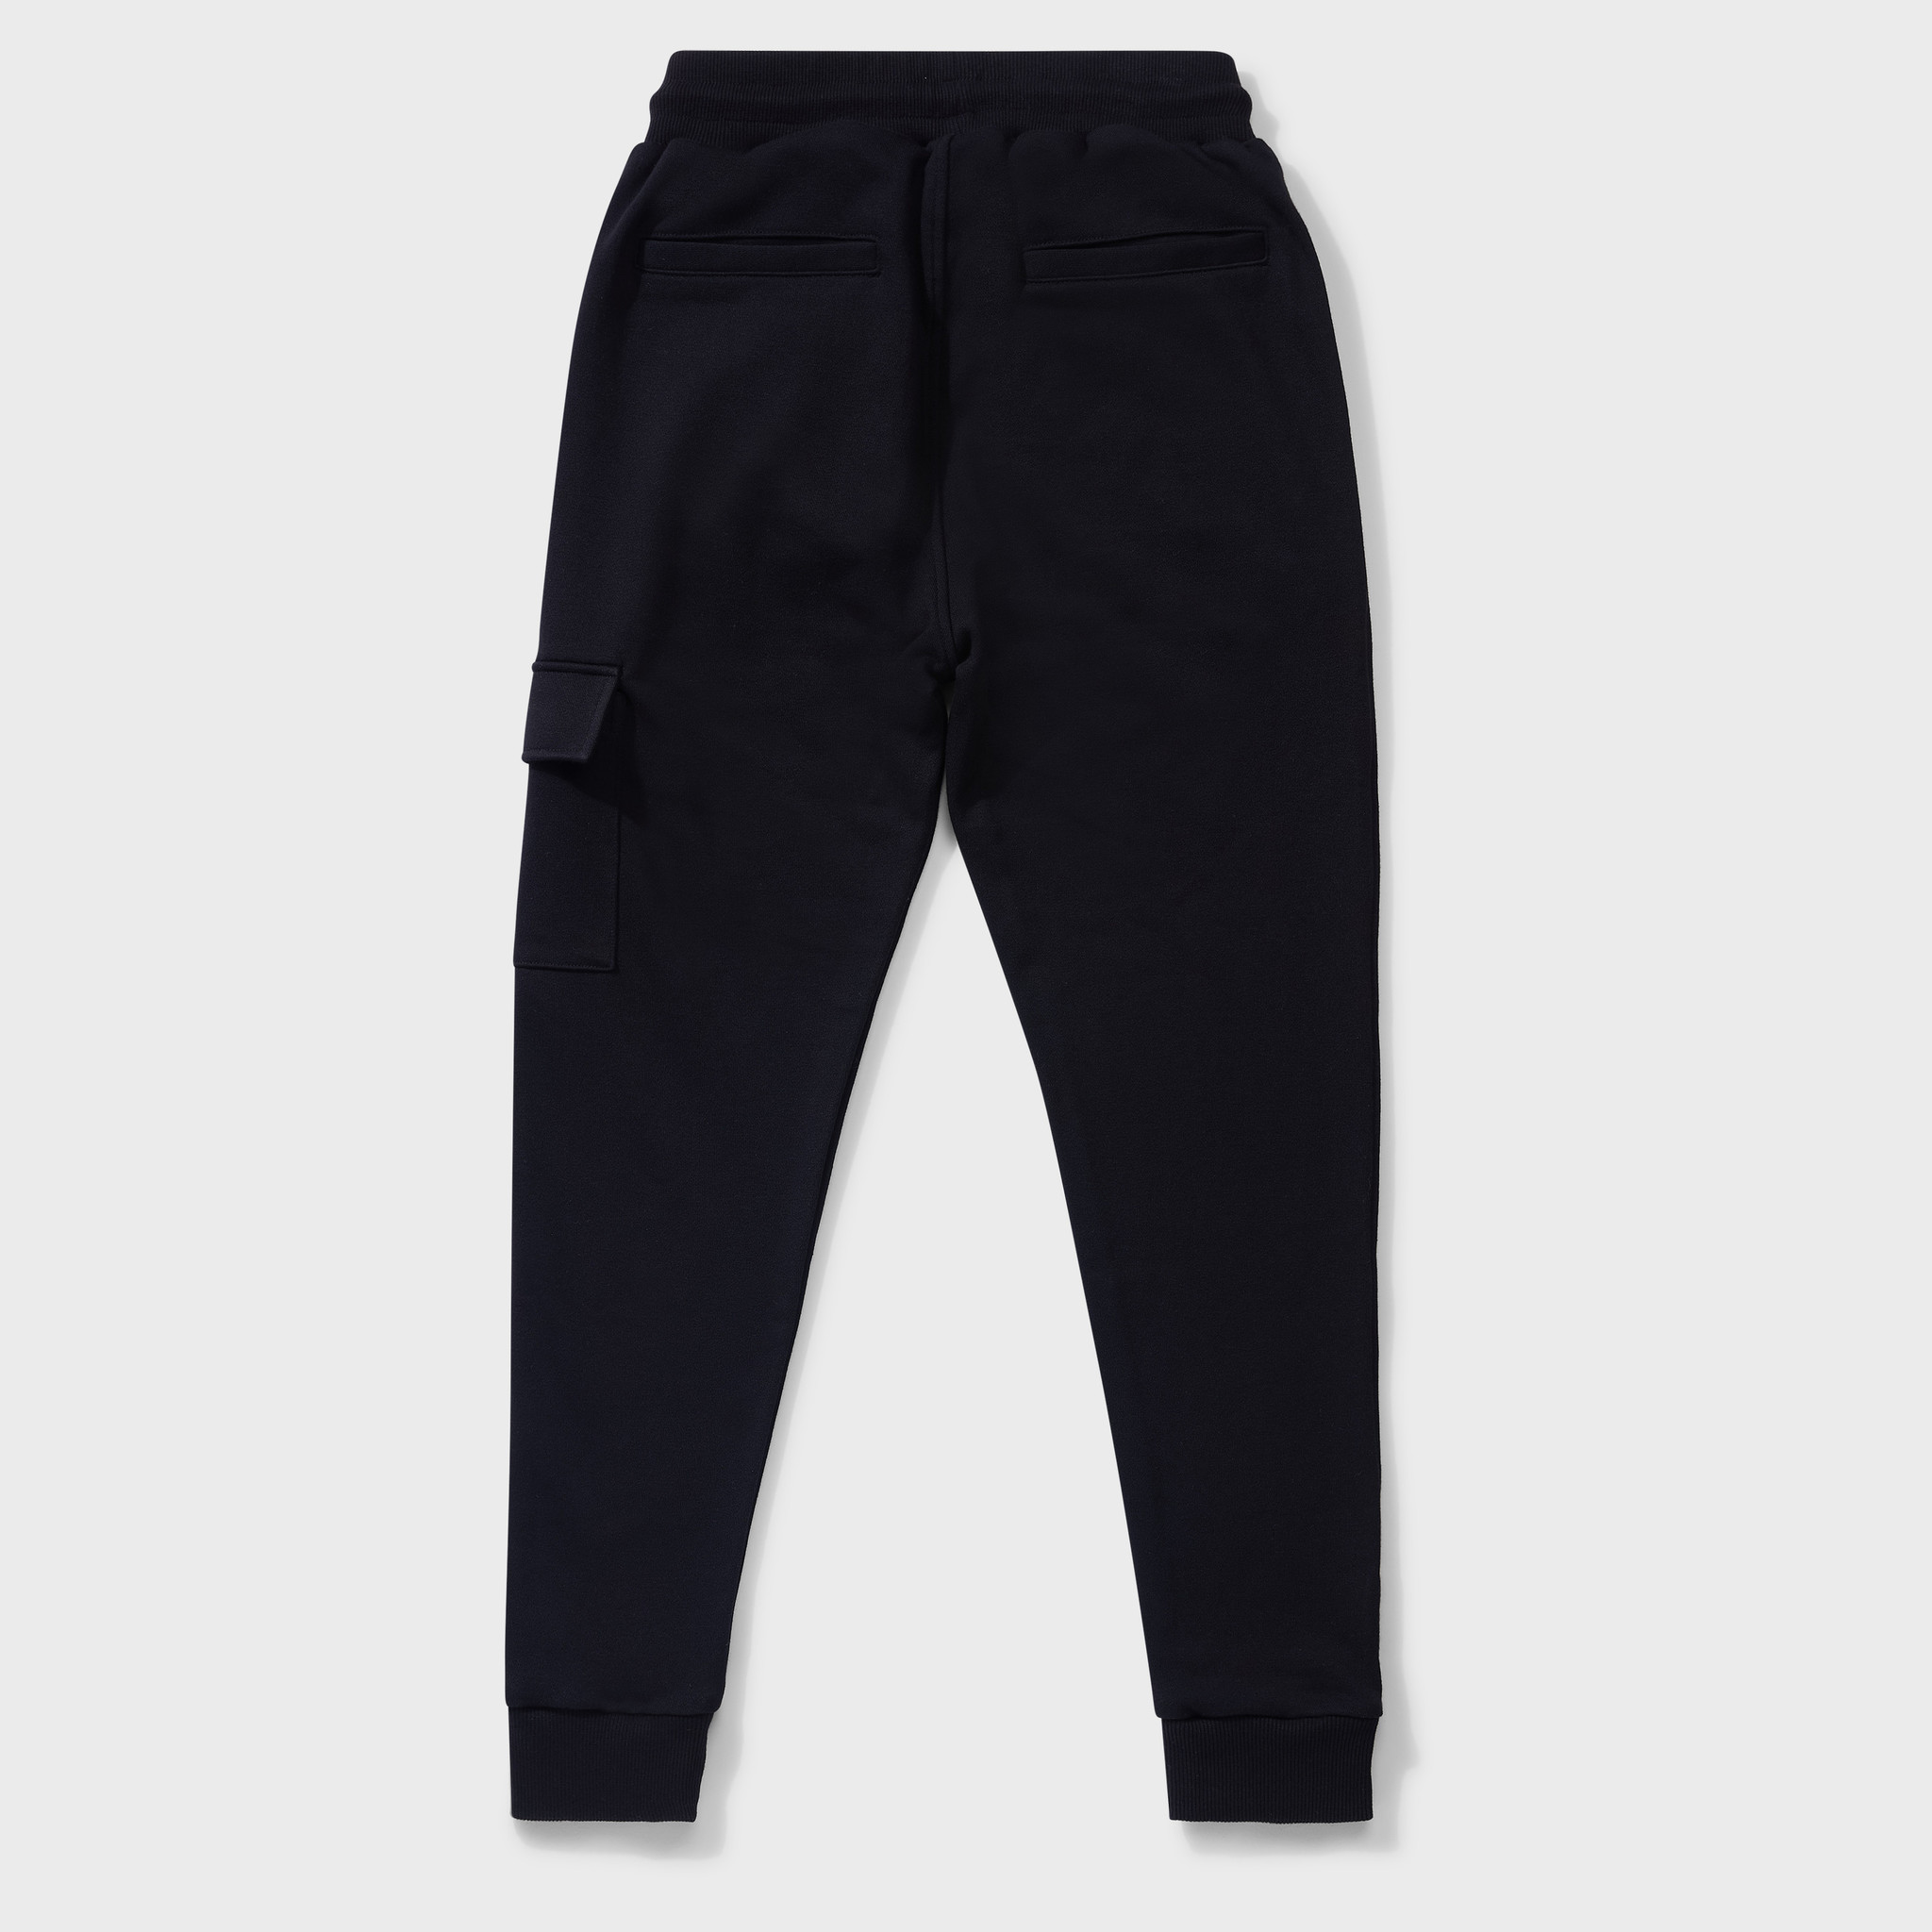 CARGO SWEATPANTS BLACK & RED-2